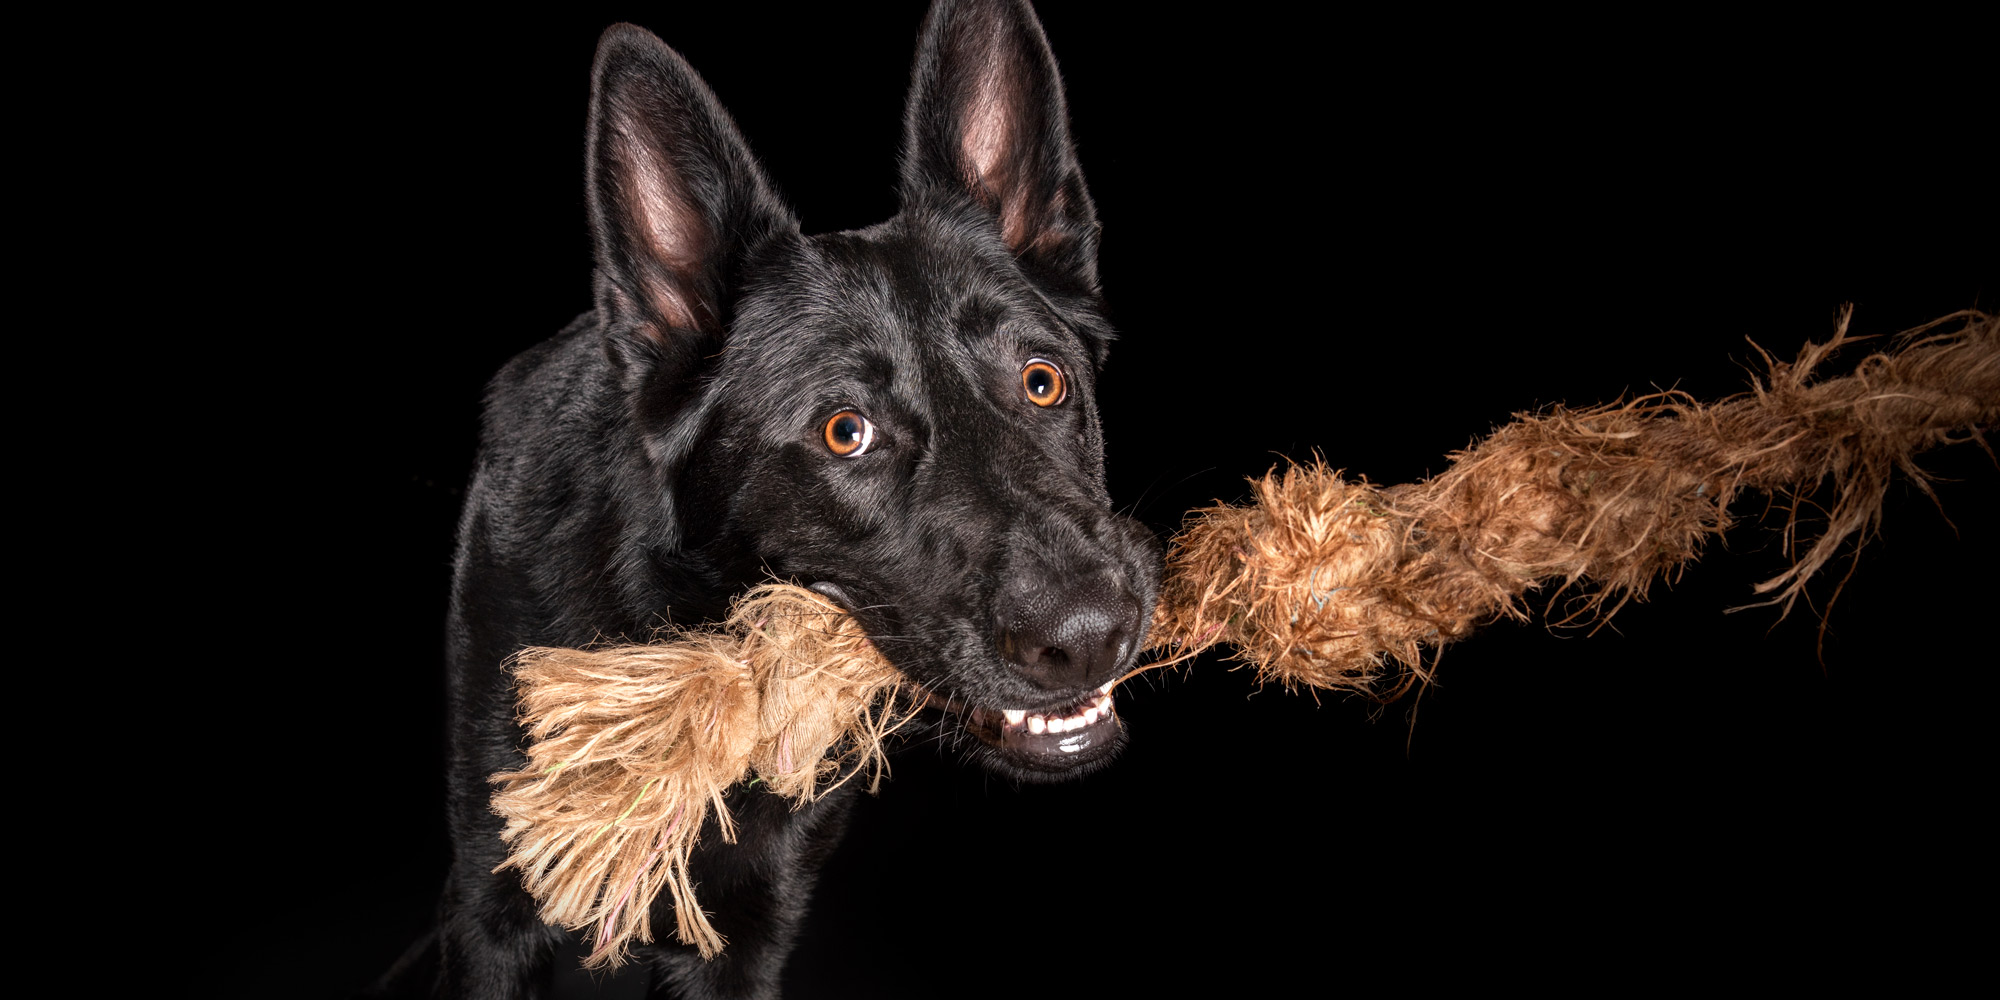 German Shepherd chewing on rope toy.